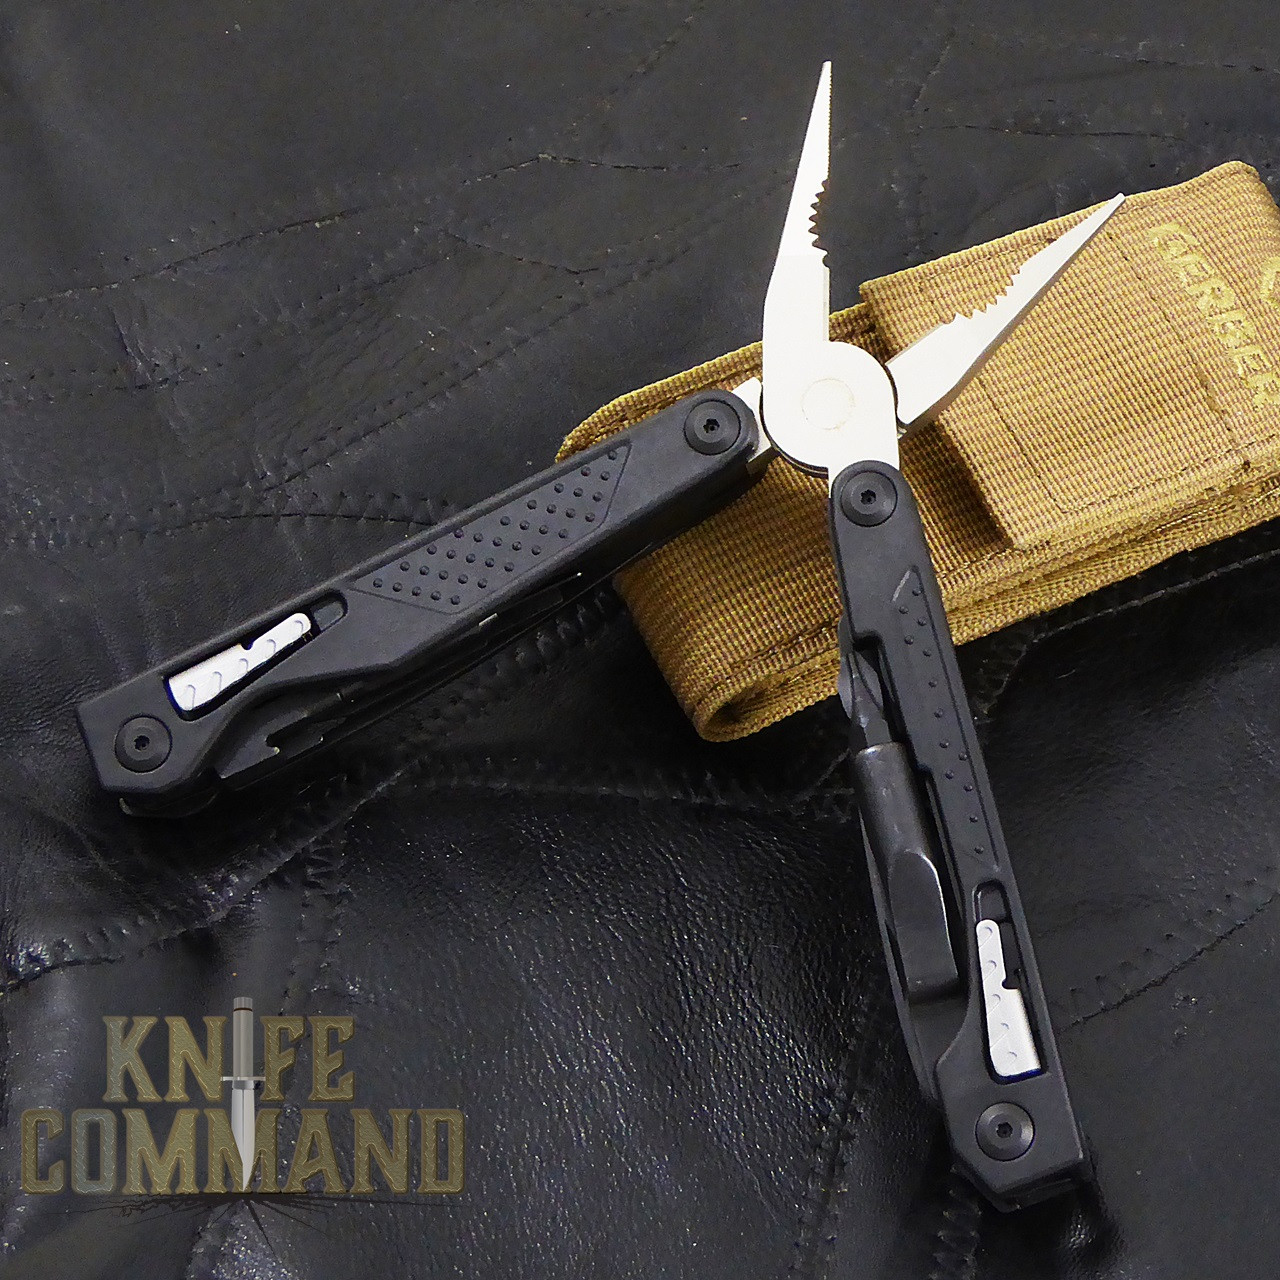 Gerber MP1-AR Weapons Multi-Tool Butterfly Opening Multi-Tool.  Spring loaded plier jaws made of forged steel, providing the ultimate in jaw strength.